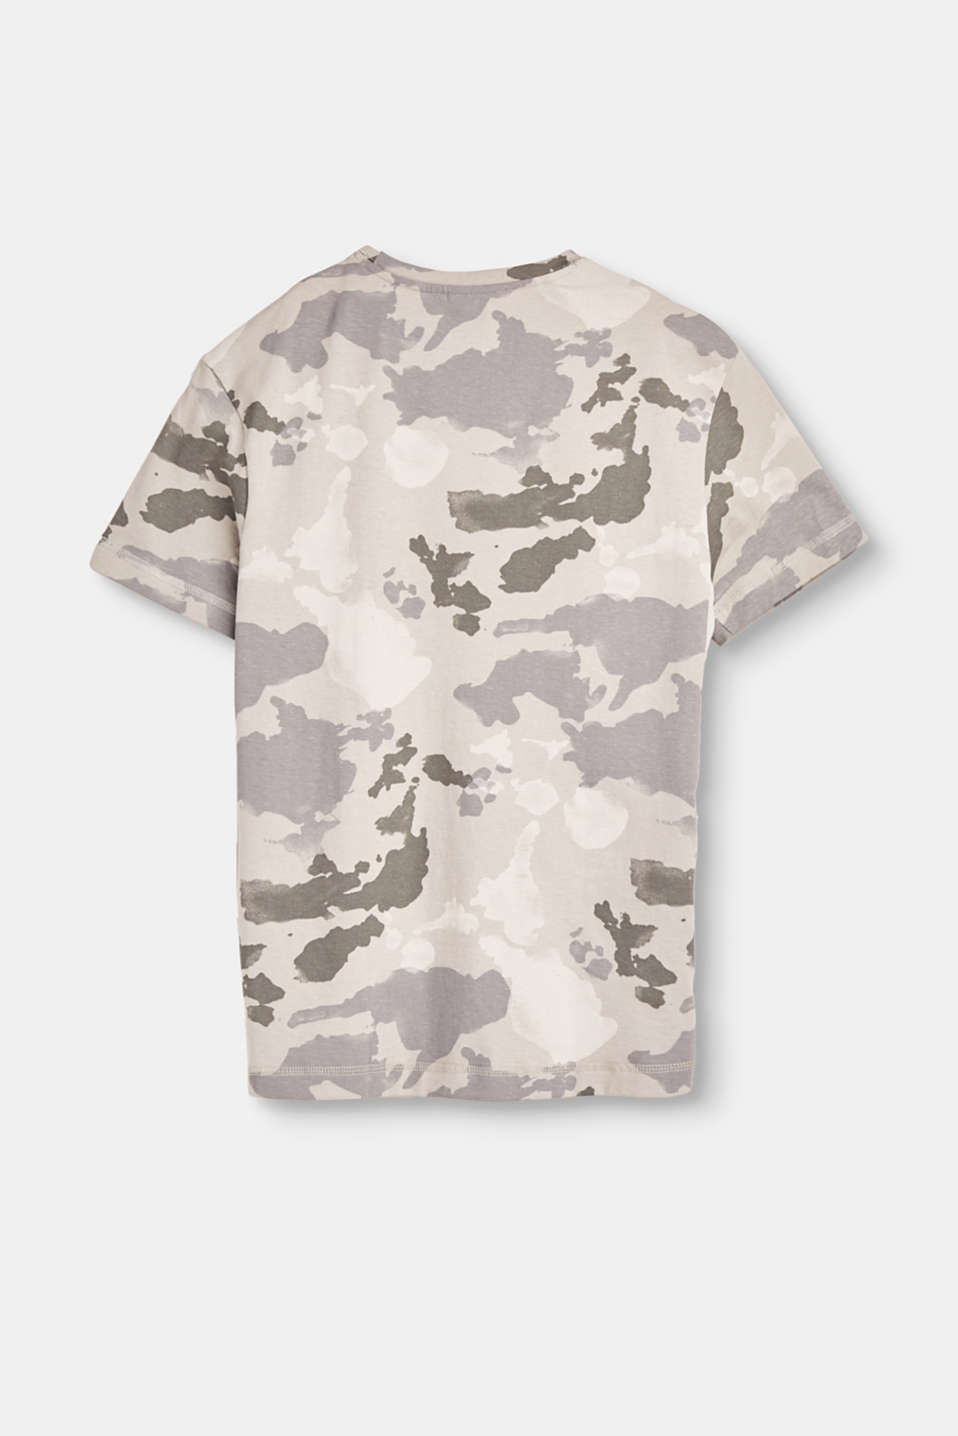 Cotton T-shirt with a camouflage pattern